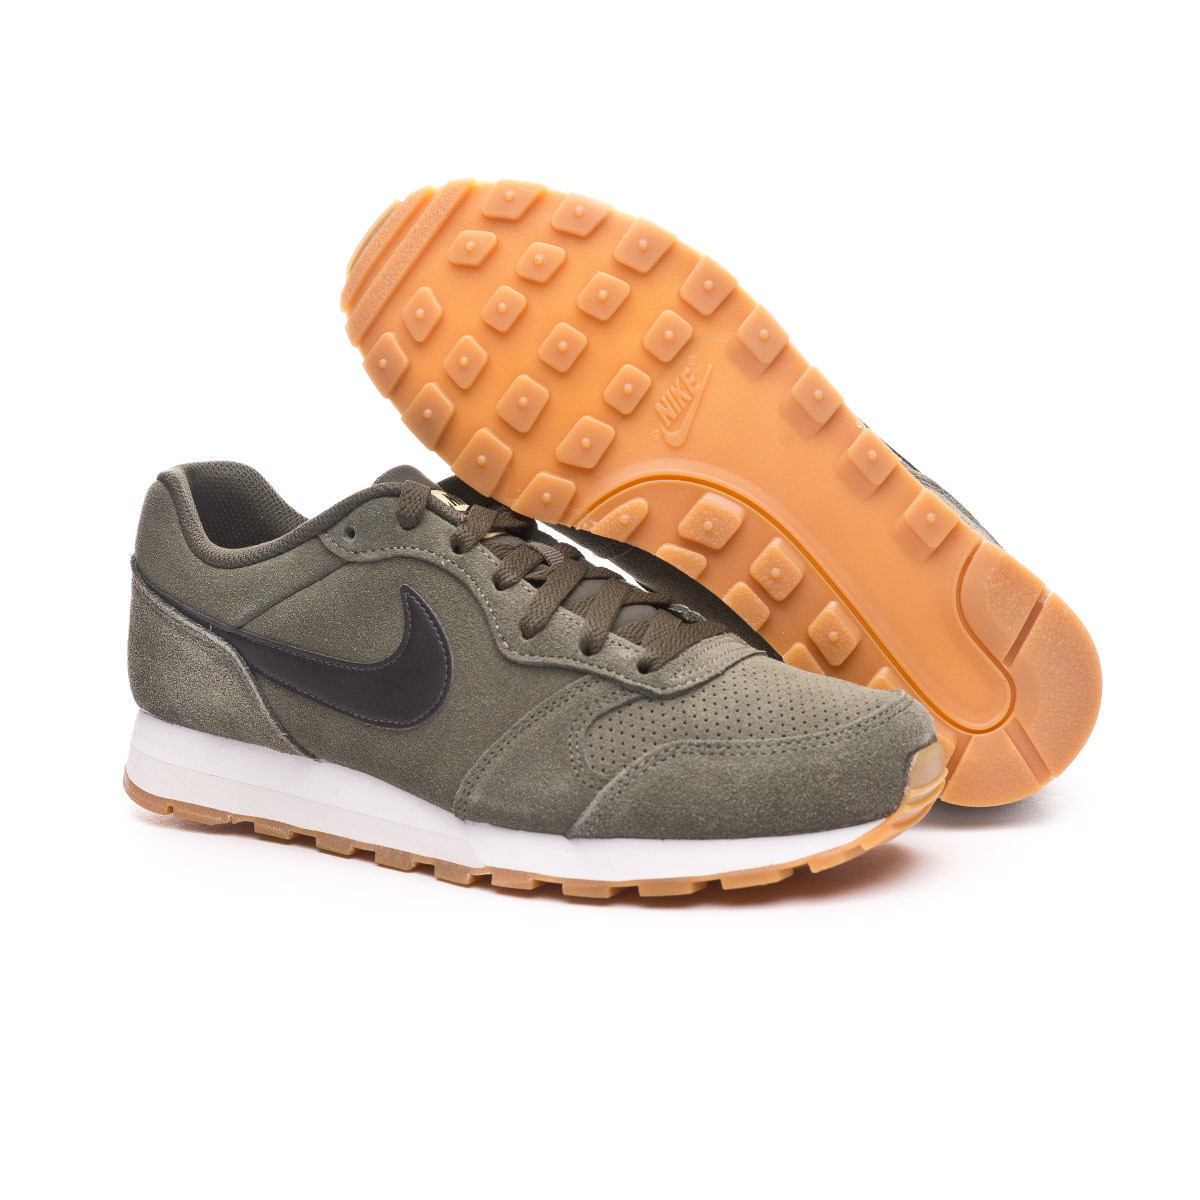 Zapatilla Nike MD Runner II Suede